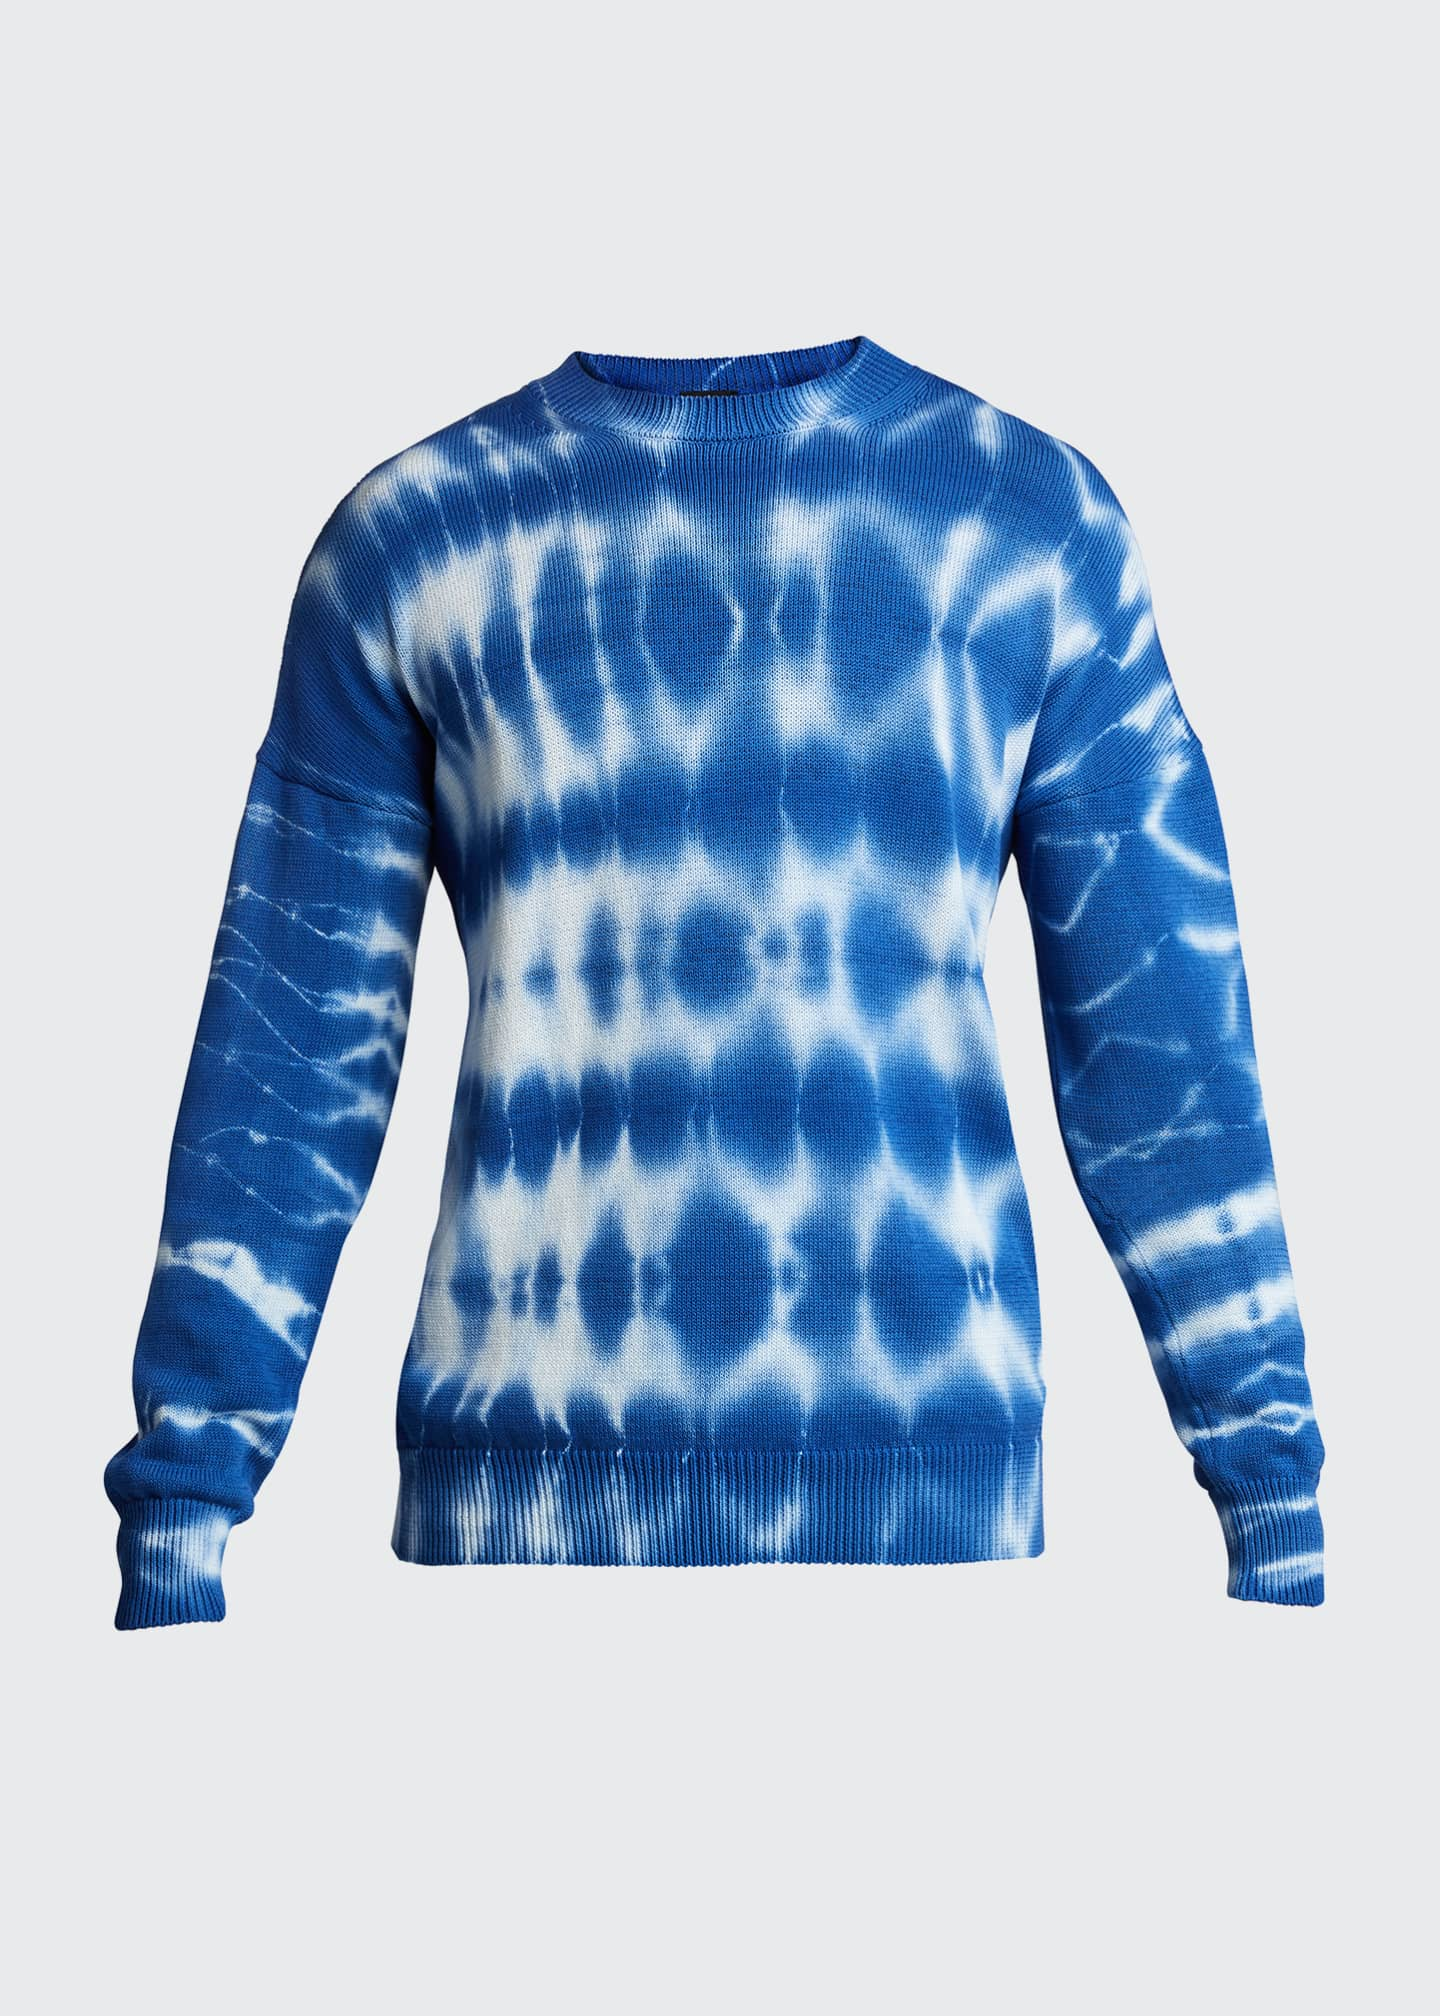 Image 5 of 5: Men's Tie-Dye Crewneck Sweater